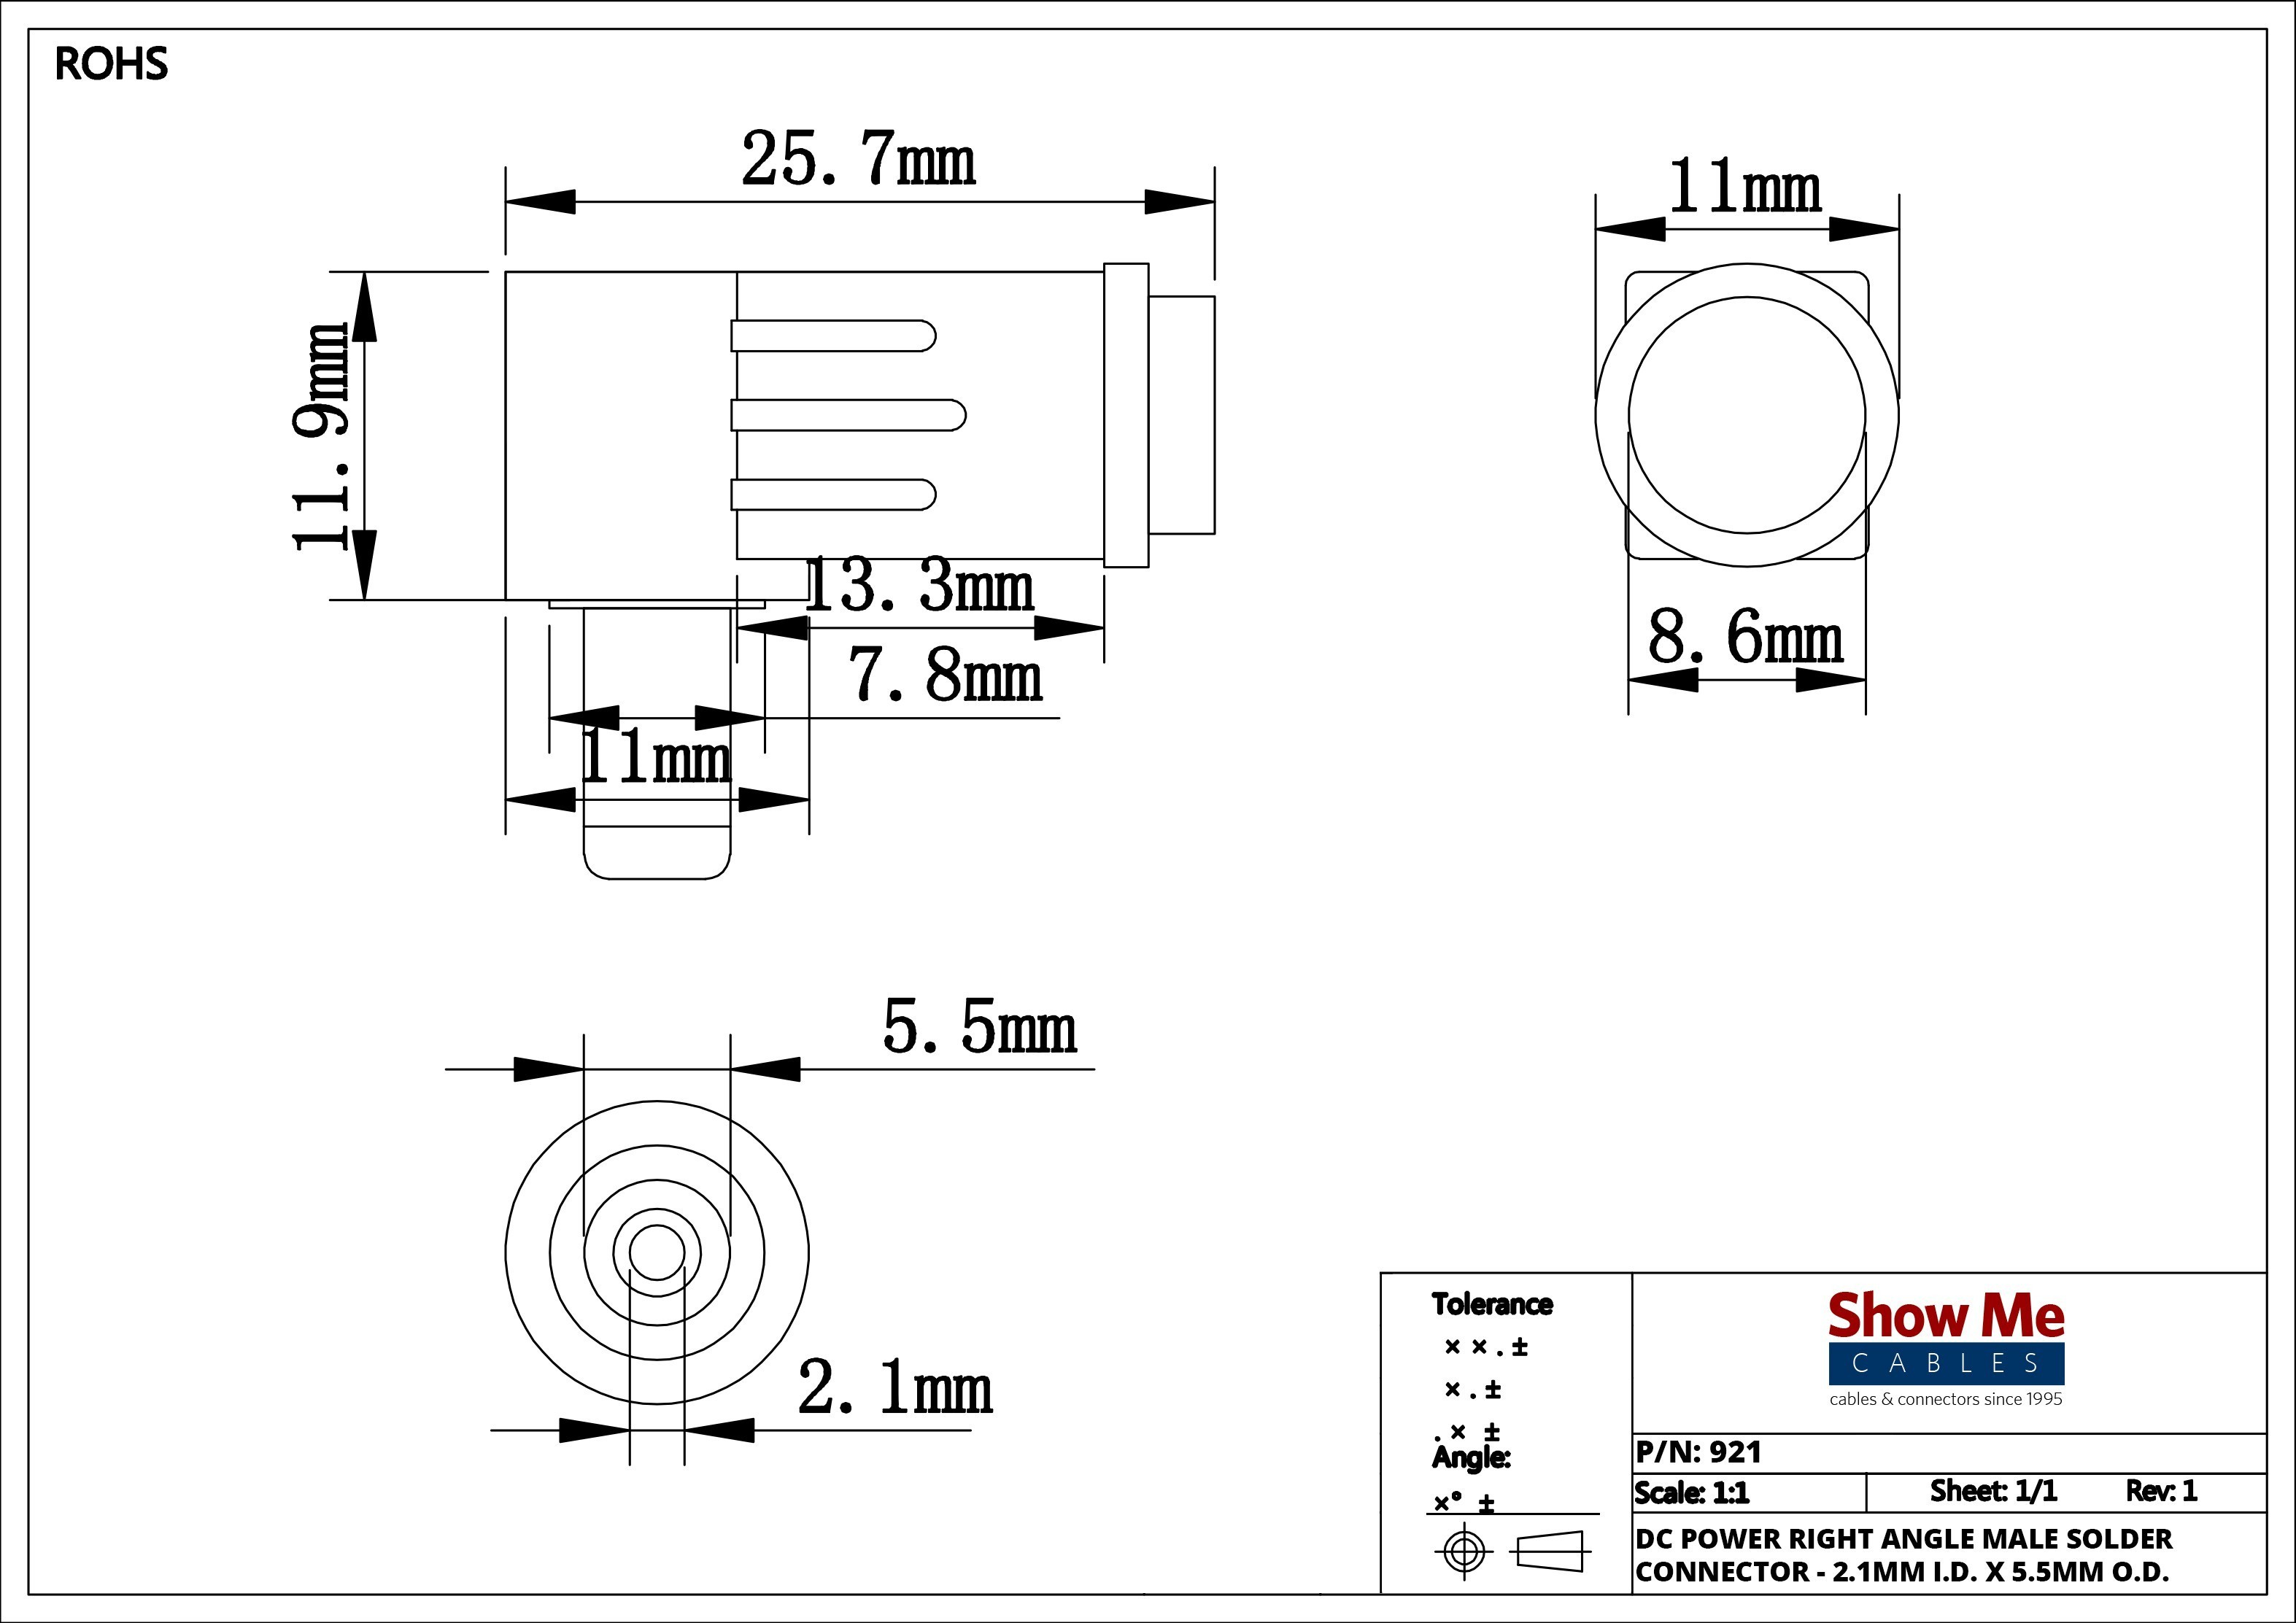 Home Stereo Wiring Diagram whole House Audio Wiring Diagram 3 5 Mm Stereo Jack Wiring Diagram